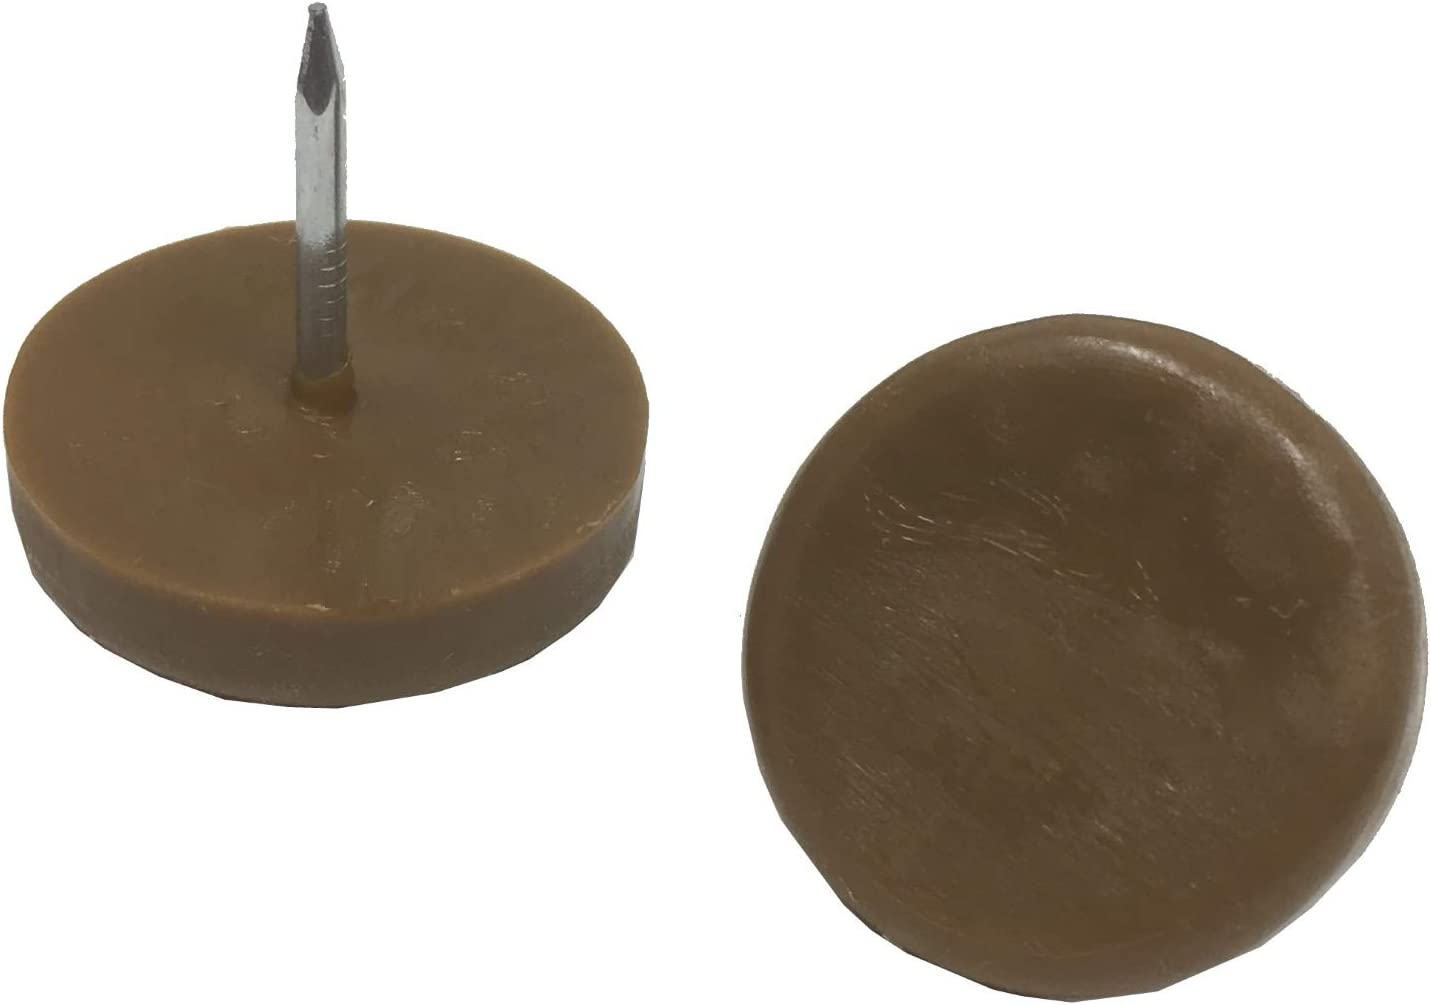 """Desunia 1"""" Dia. Nylon Slider Glides for Chairs, Stools, Tables - Protects Your Floors as Furniture Slides Like Magic Over Tile, Carpet, Hardwood - Brown - Box of 25"""